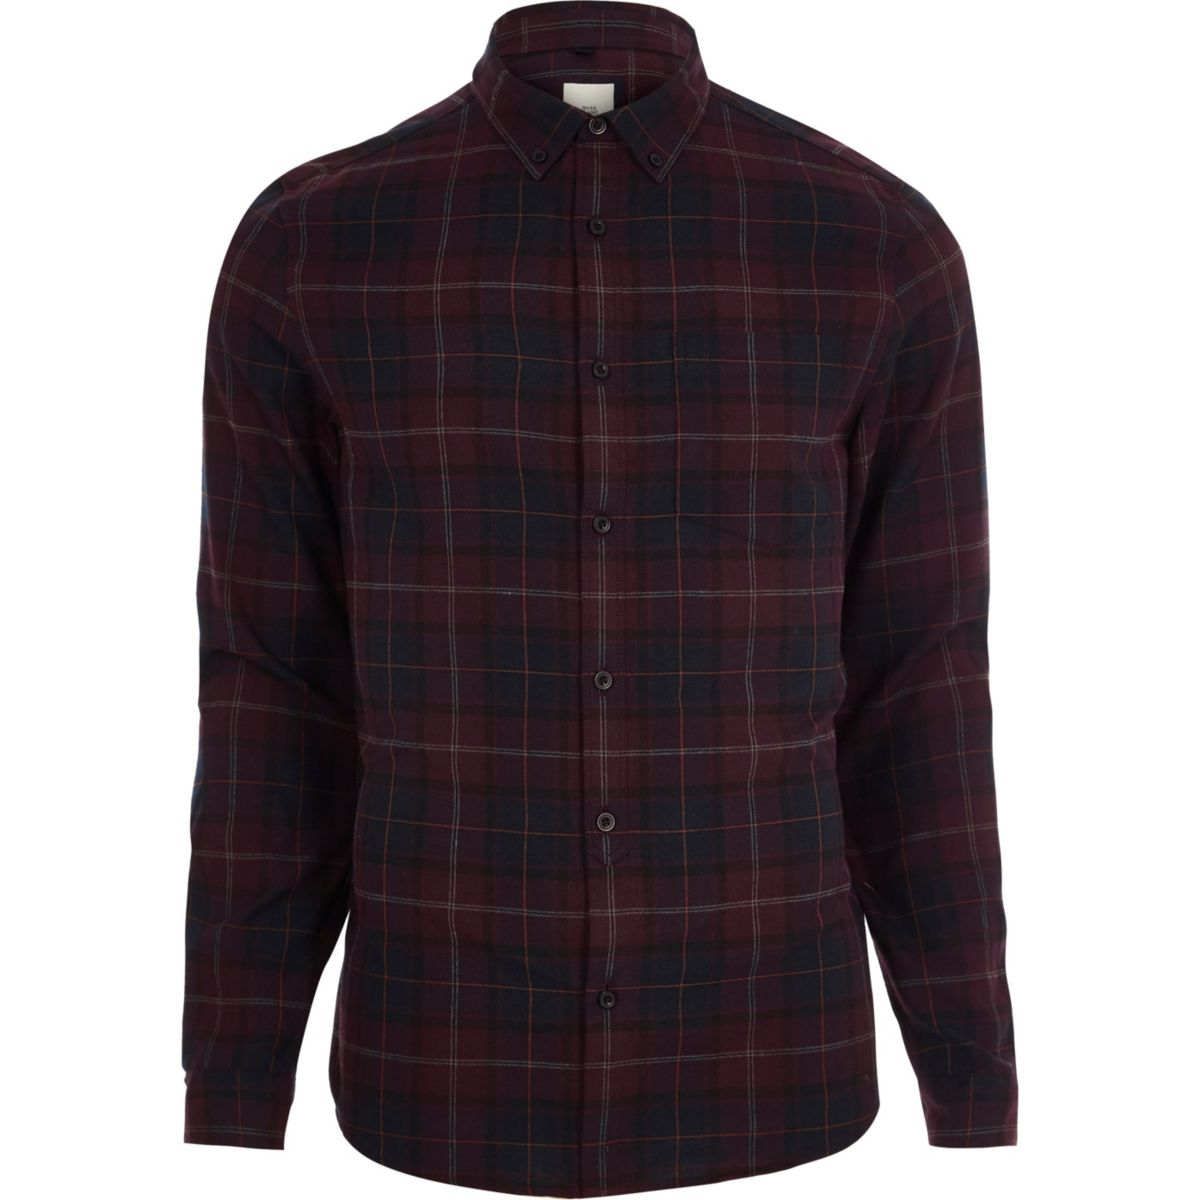 Burgundy check long sleeve shirt shirts sale men for Mens long sleeve t shirts sale